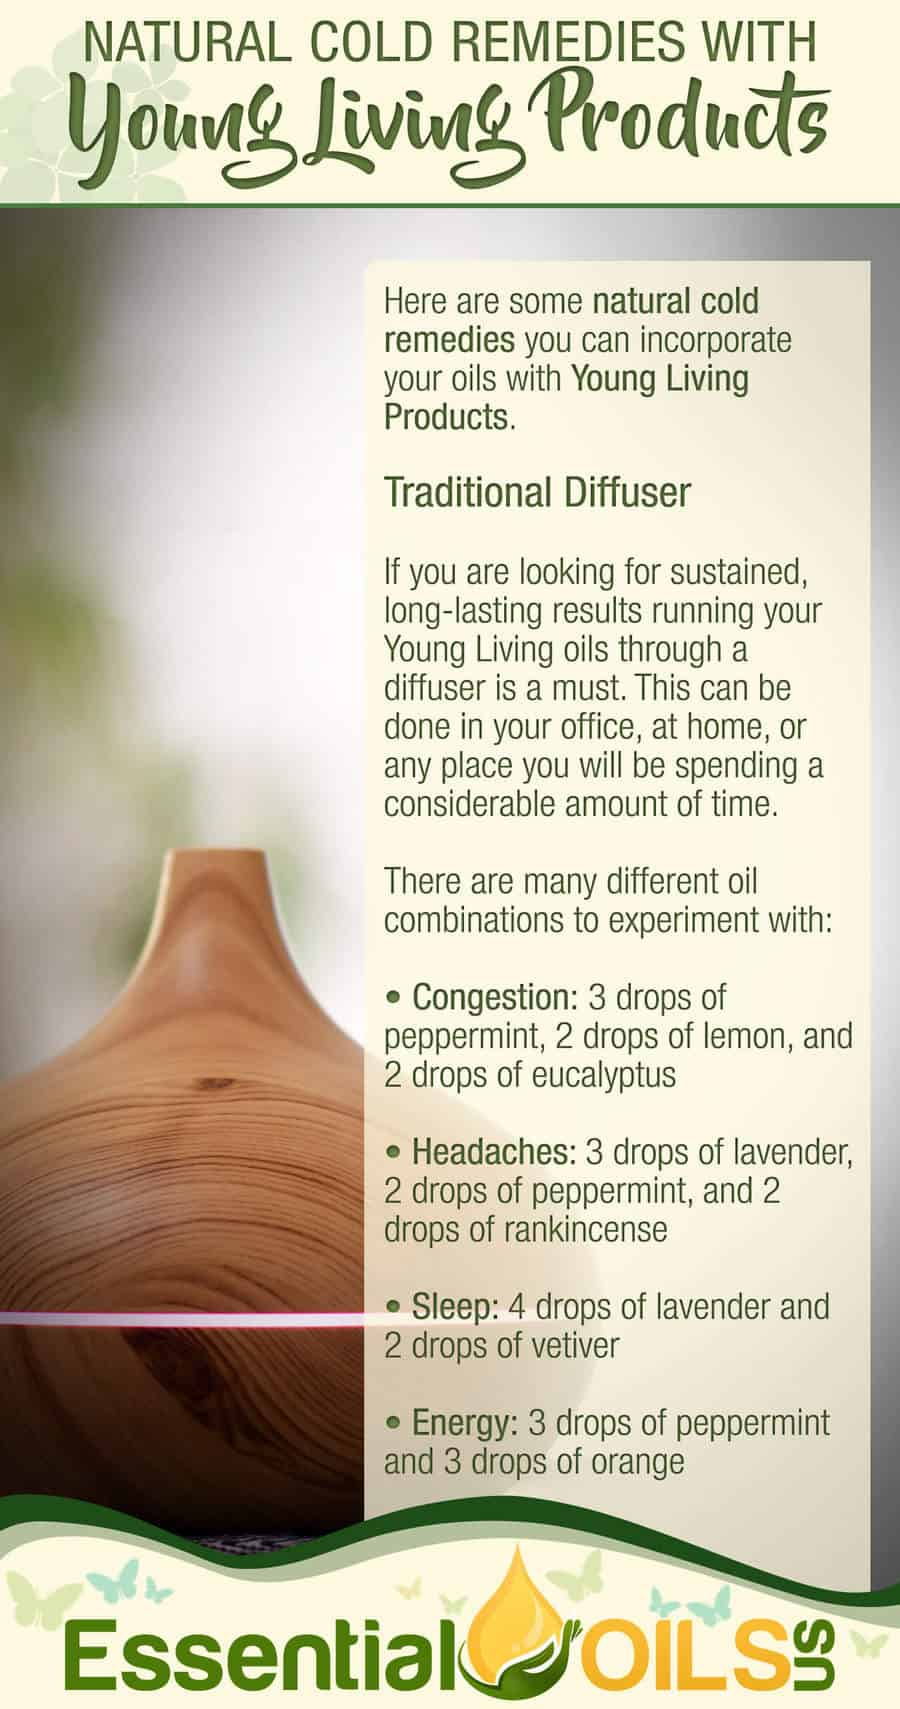 Natural Cold Remedies With Young Living - Traditional Diffuser